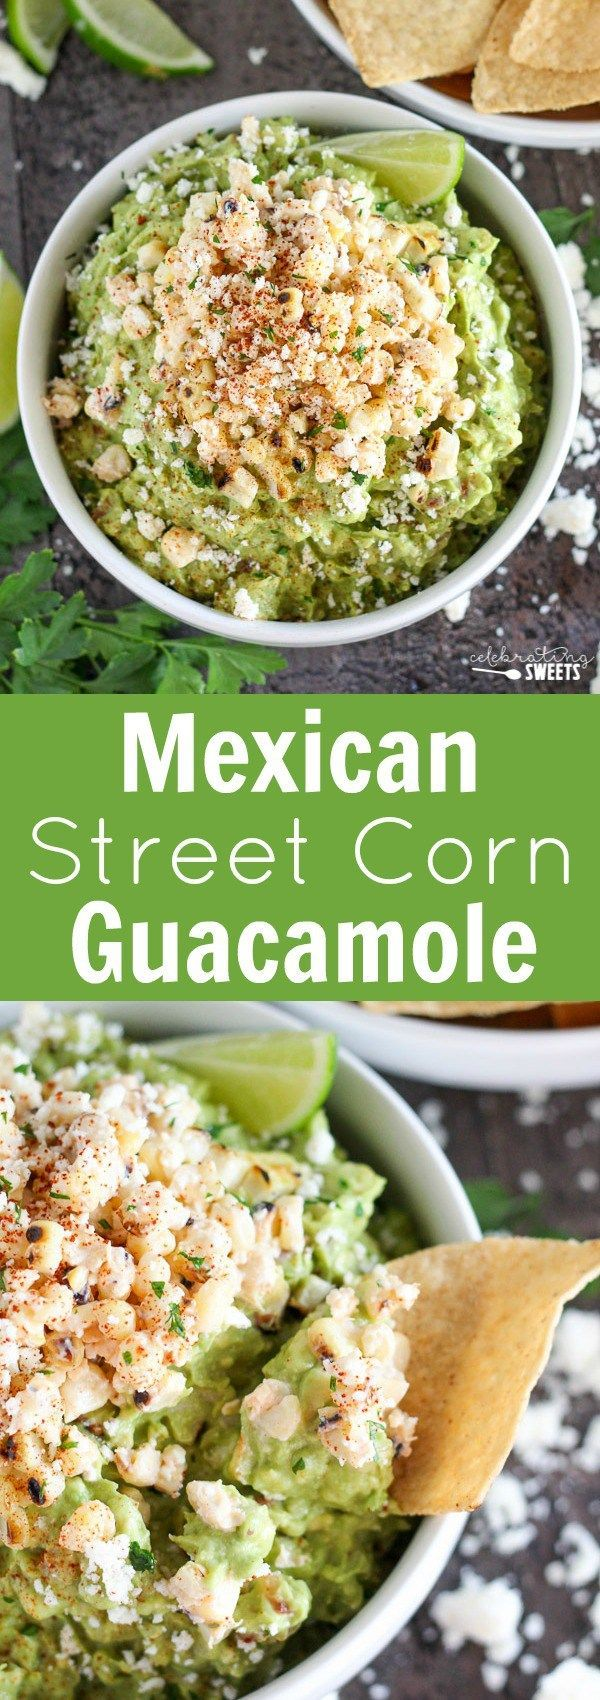 Mexican Street Corn Guacamole - Guacamole flavored with fire roasted corn, lime, chili powder and cotija cheese.